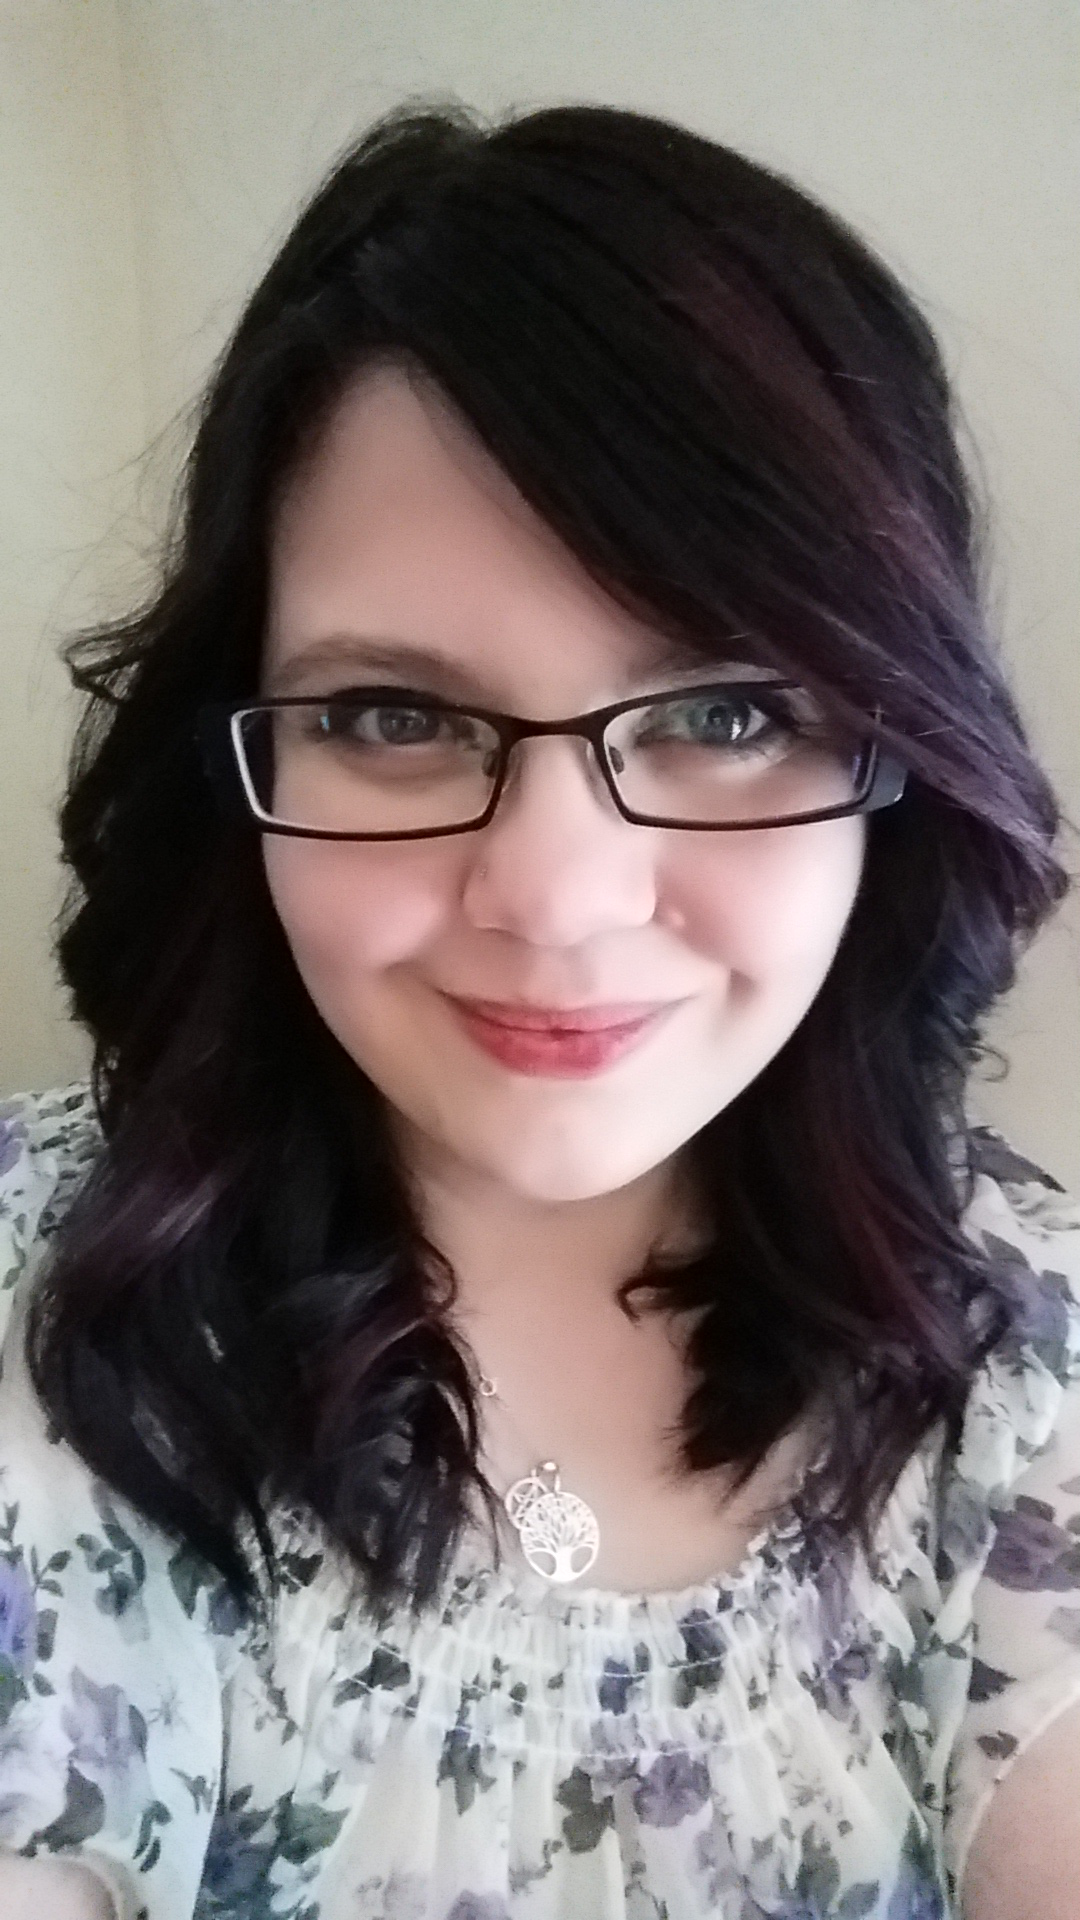 Image Description: A picture of Aerilyn who has white pale skin and blue eyes and is slightly smiling. She is wearing black squareish framed glasses. Her hair is purple with lighter purple highlights and is wearing a necklace with a pentagram and the tree of life. She is wearing a white shirt with purple flowers and green leaves. The background is beige.